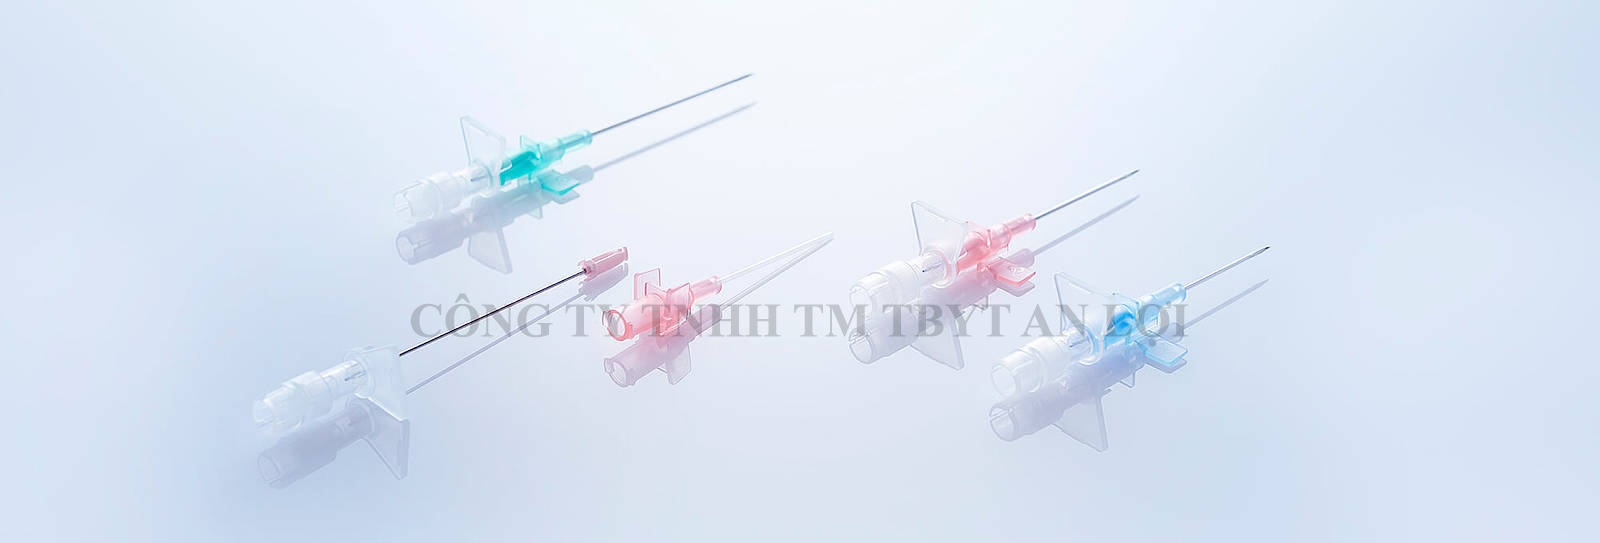 Clip Winged Safety I.V. Catheter